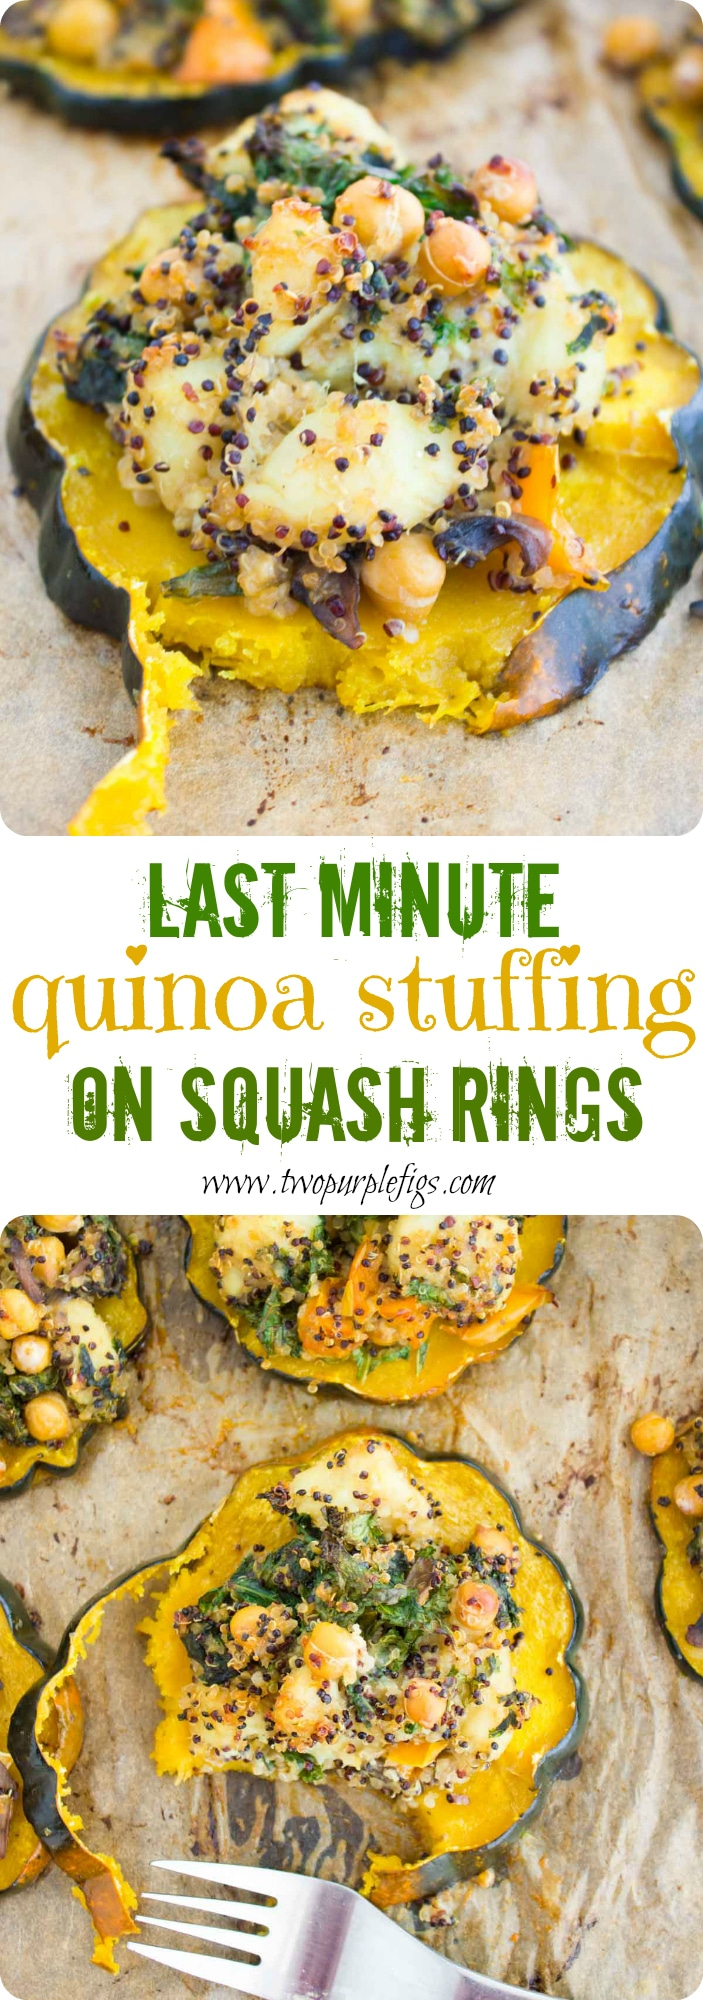 Last Minute Quinoa Kale Stuffing Topped Squash Rings | These pretty acorn squash rings topped with a vegetarian Quinoa Kale Stuffing are just about the prettiest Thanksgiving side dish you can imagine! The easy and healthy recipe is totally customizable and can be made vegan by leaving out the parmesan cheese. #thanksgiving, #holidays, #side, #acornsquash, #lastminuterecipe, #vegetarianrecipe